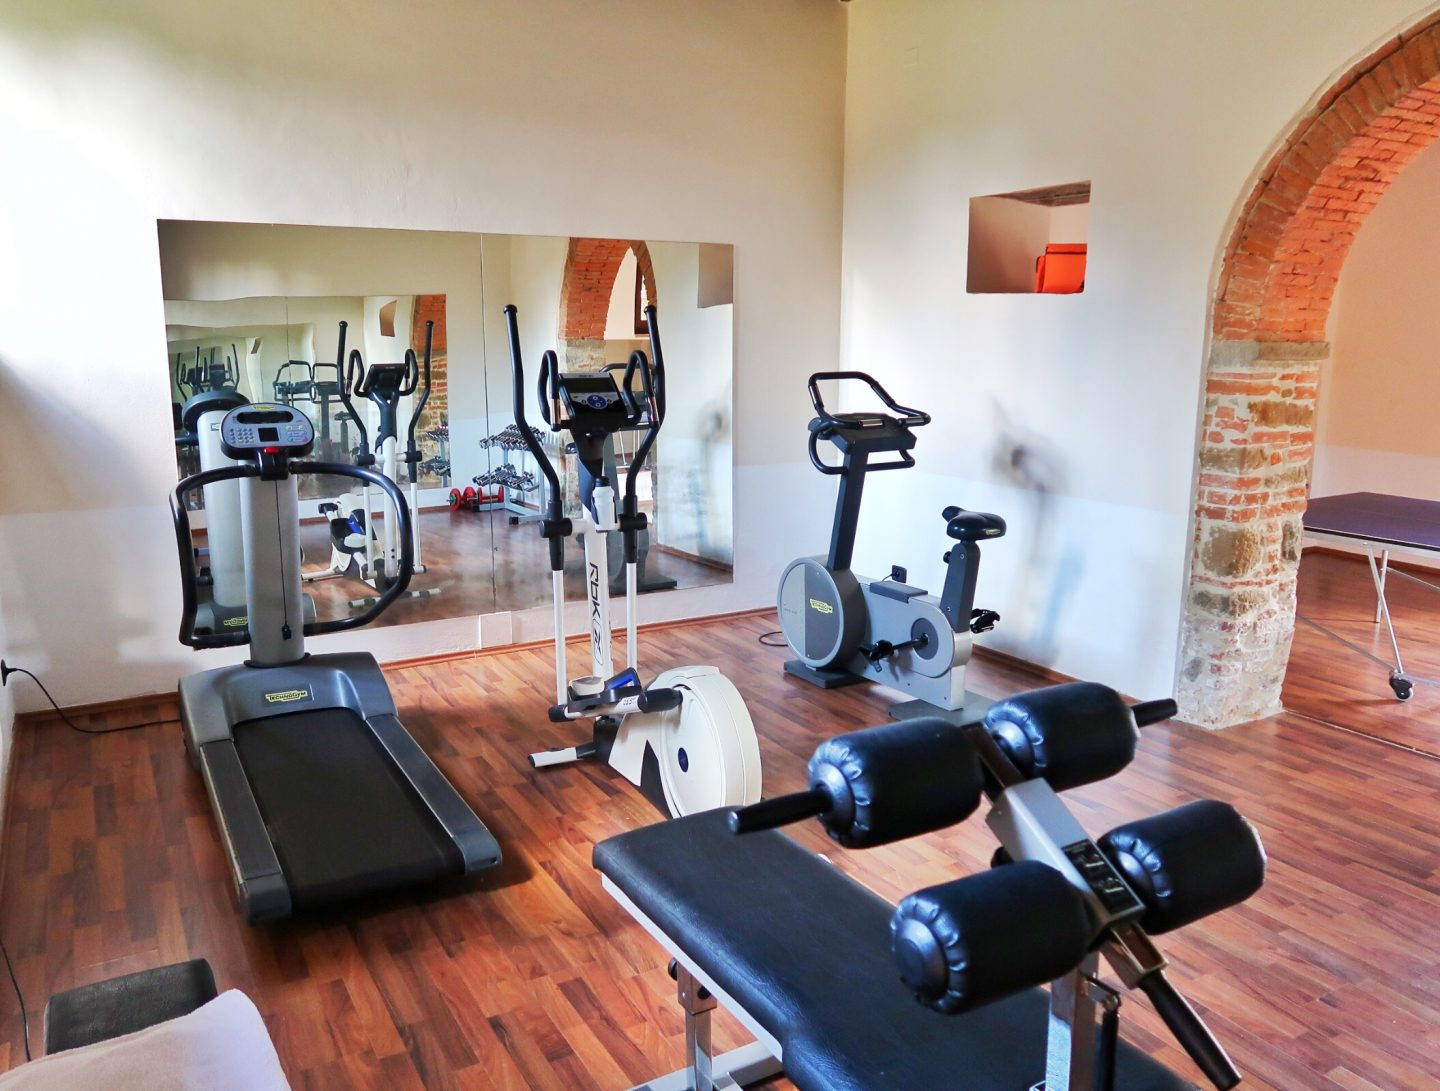 The well equipped gym at Villa Tornaie in Tuscany on the Bookings For You website.